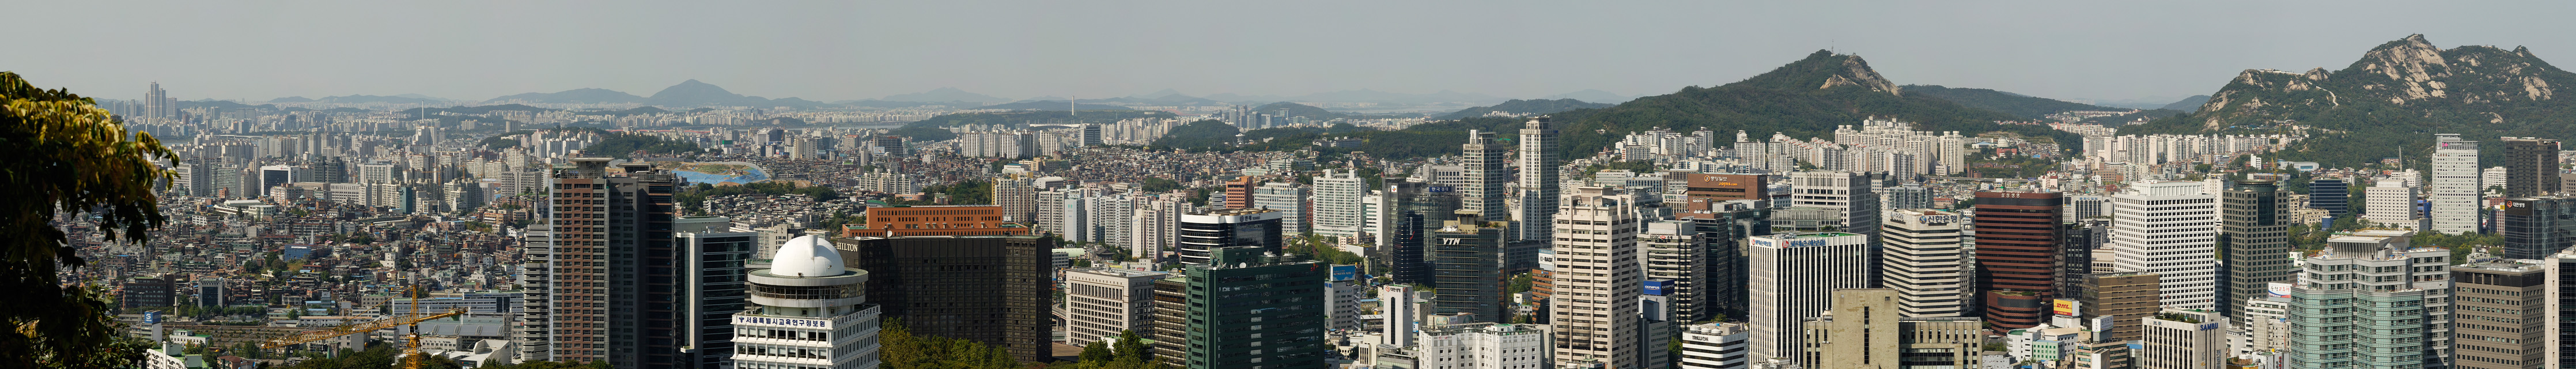 Seoul panorama from partway up north side of Namsan